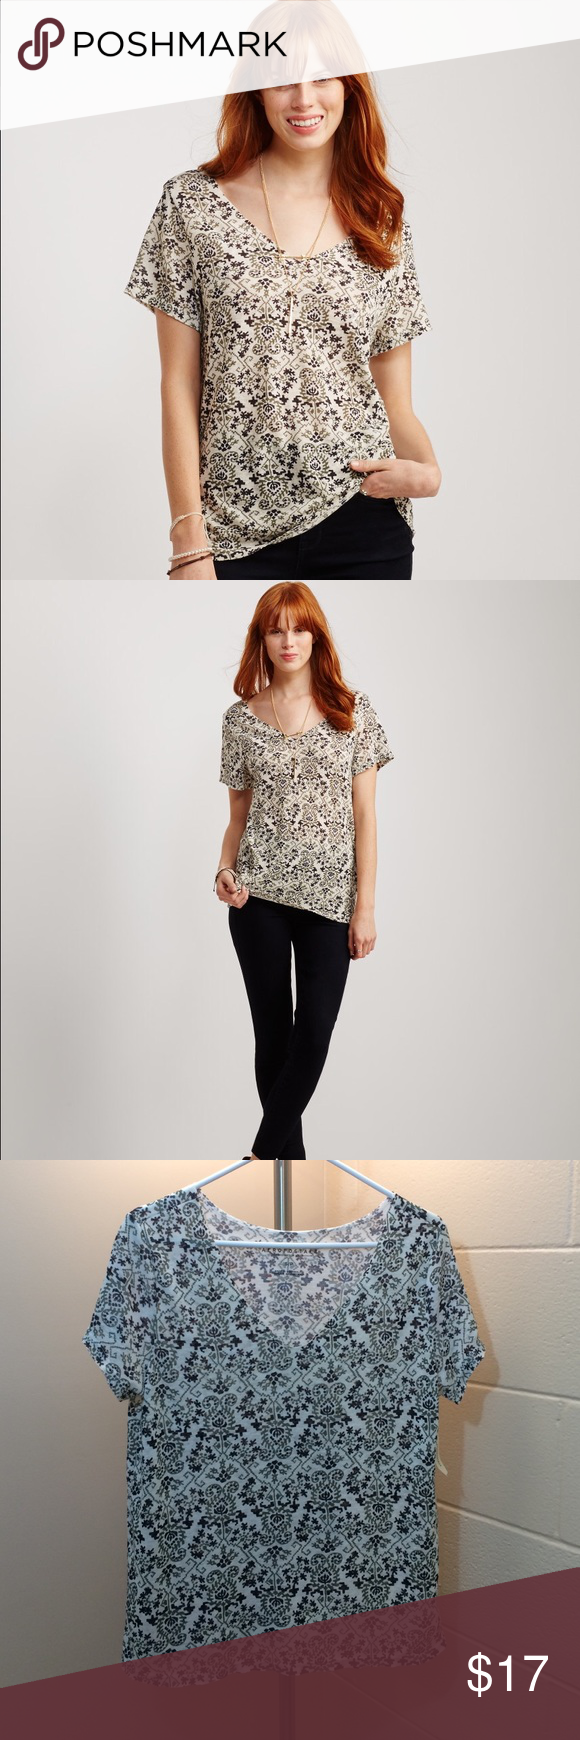 Aero Printed Frayed V Neck Tee NWT Aeropostale frayed printed v neck tee. Size small. Oversized fit. 100% polyester. Looks great with an olive jacket 😍 open to offers and 30% off bundles! Aeropostale Tops Tees - Short Sleeve